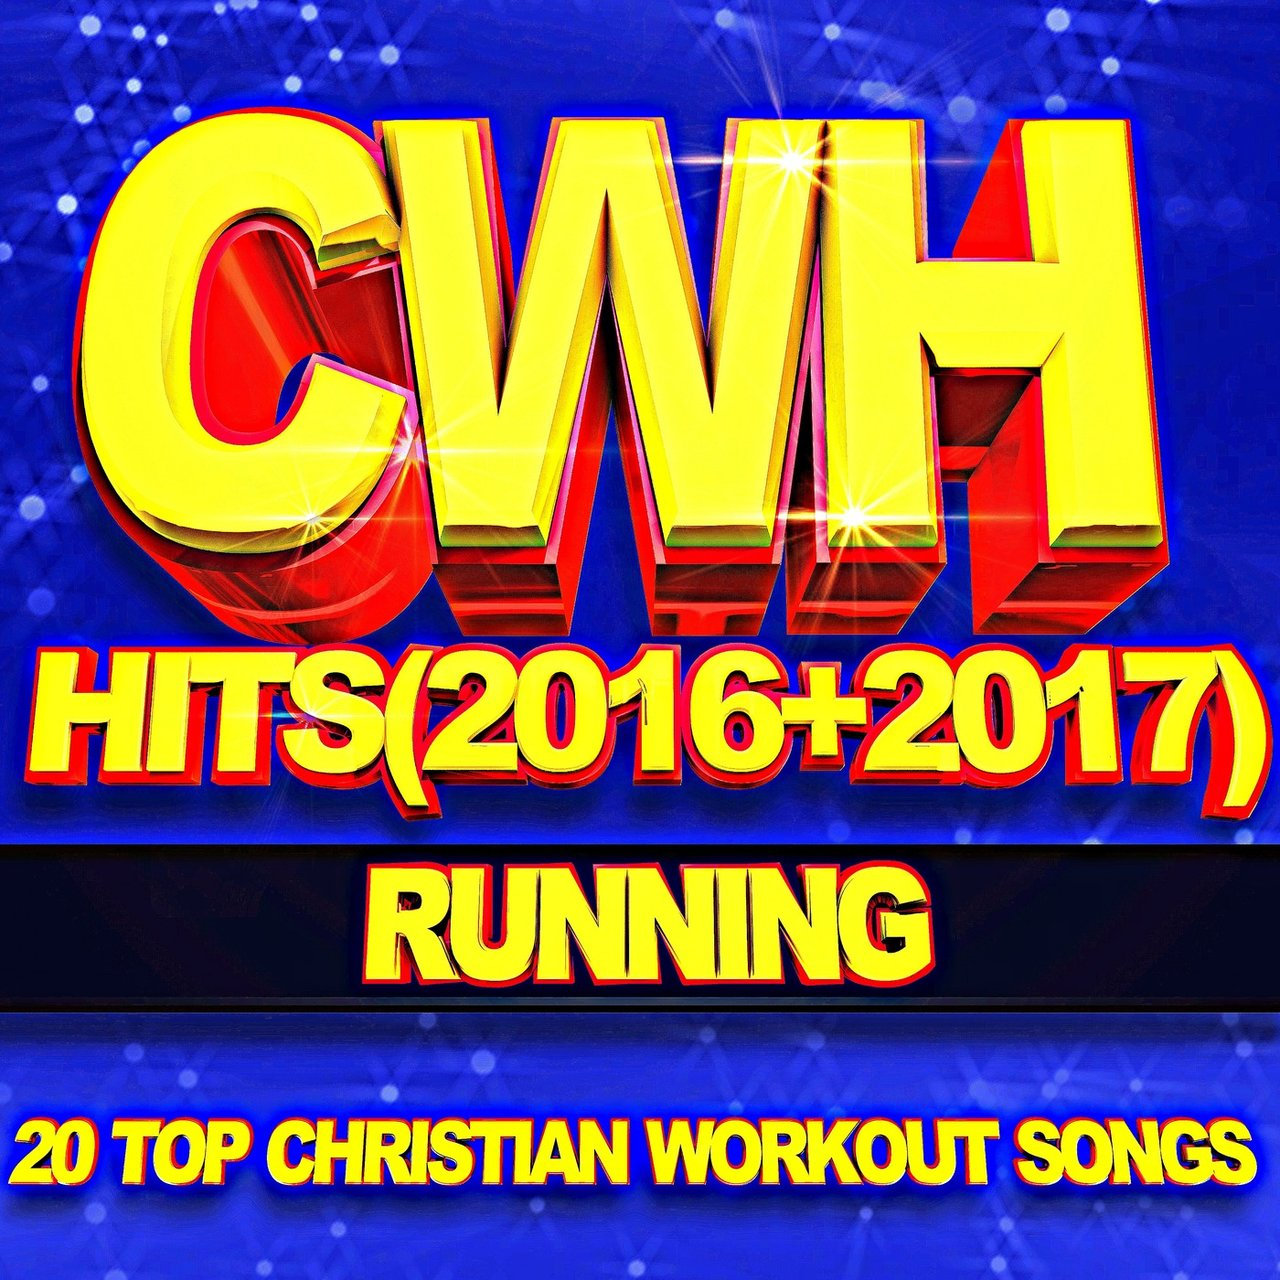 cwh running 20162017 20 top christian workout songs